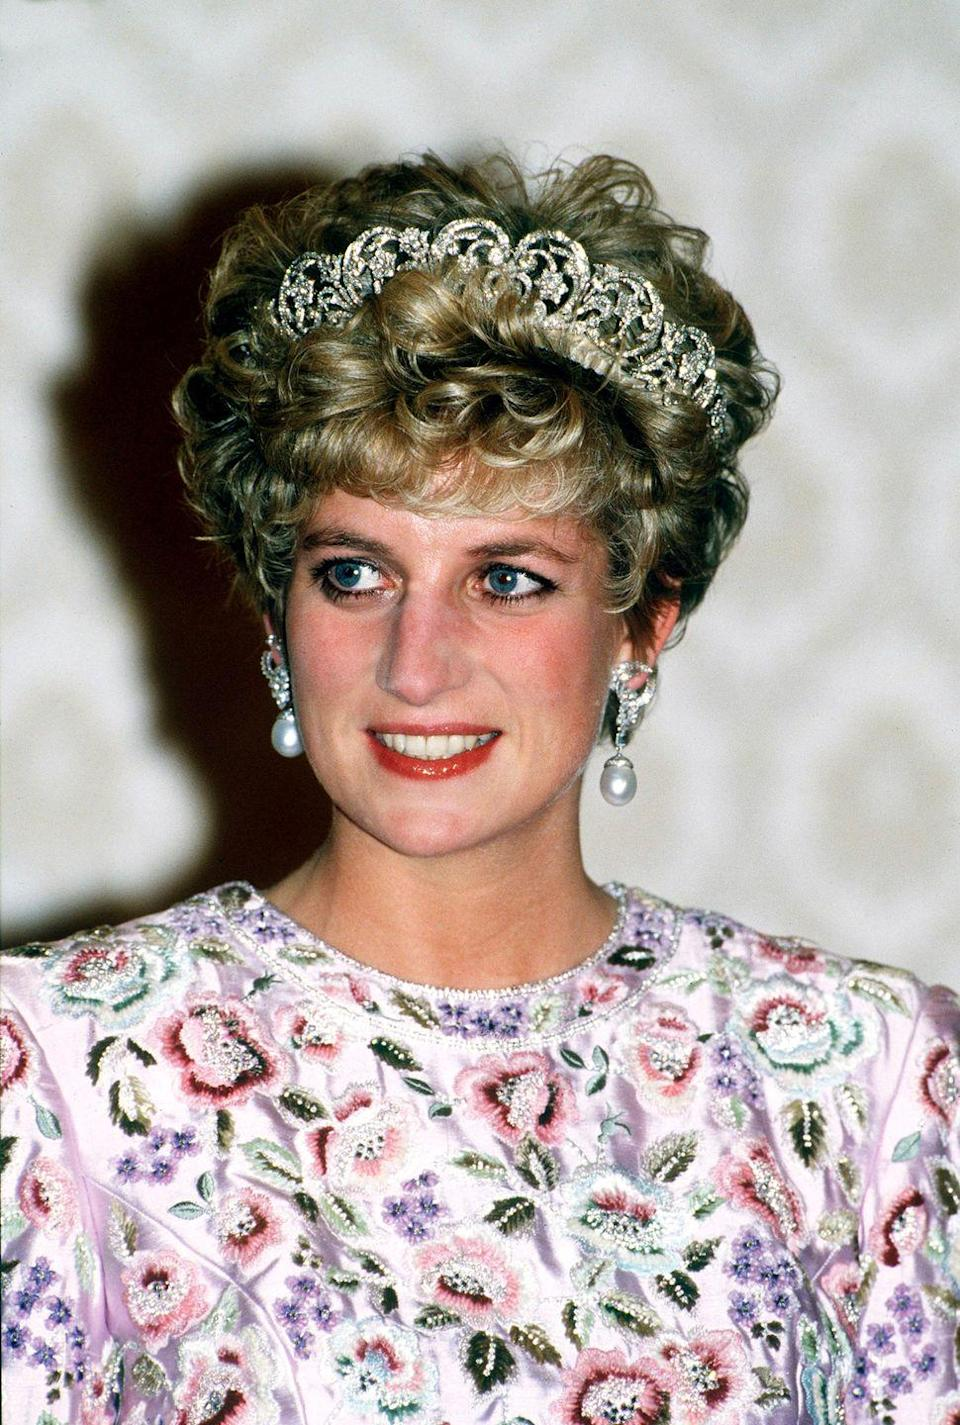 <p>For banquet thrown by President Roh in Seoul, South Korea, Princess Diana wore a colorful, embroidered Catherine Walker gown, paired with large pearl drop earrings and the Spencer tiara. </p>